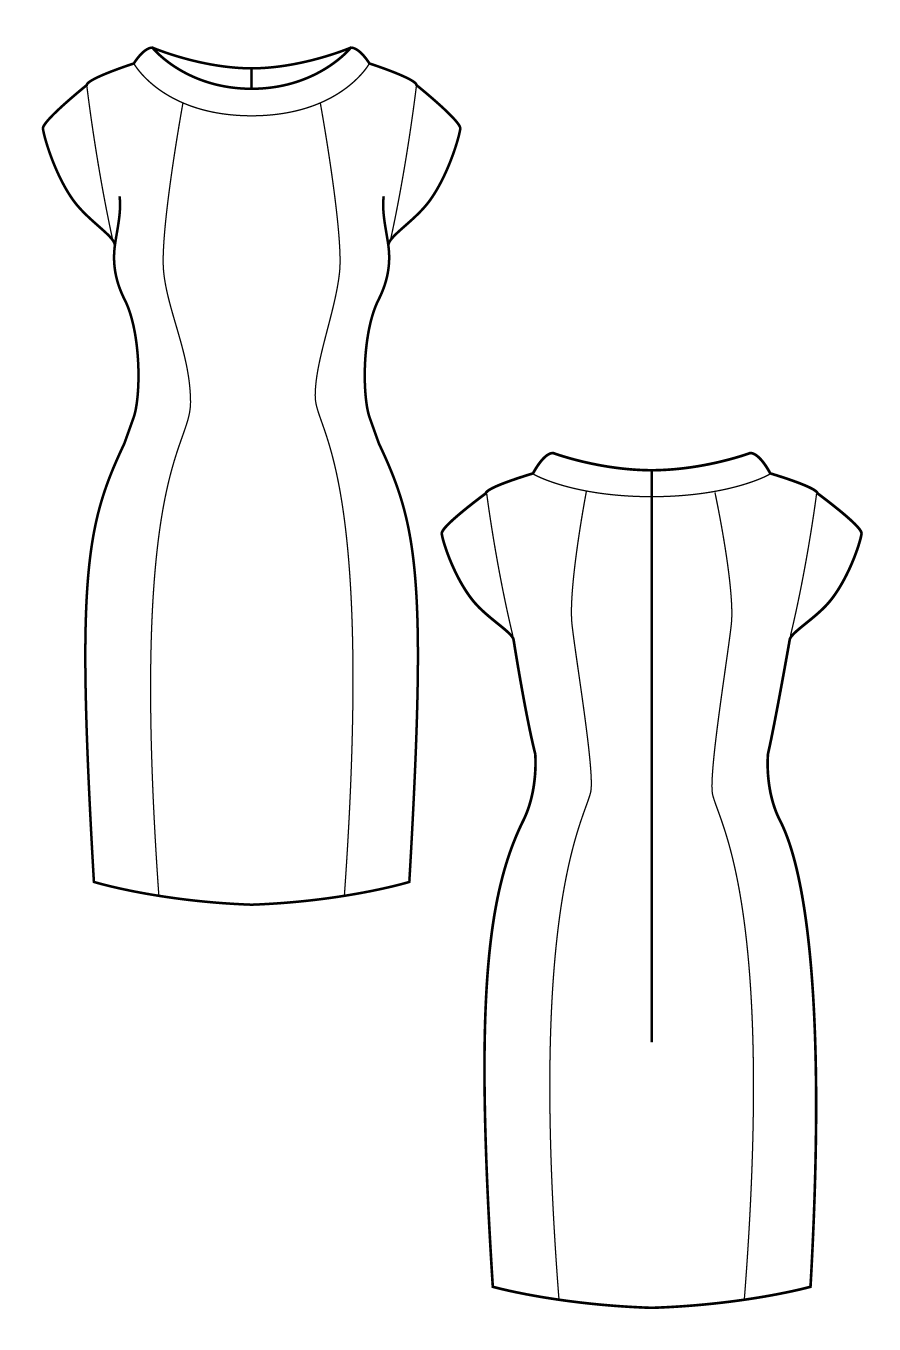 how to draw a sleeve pattern